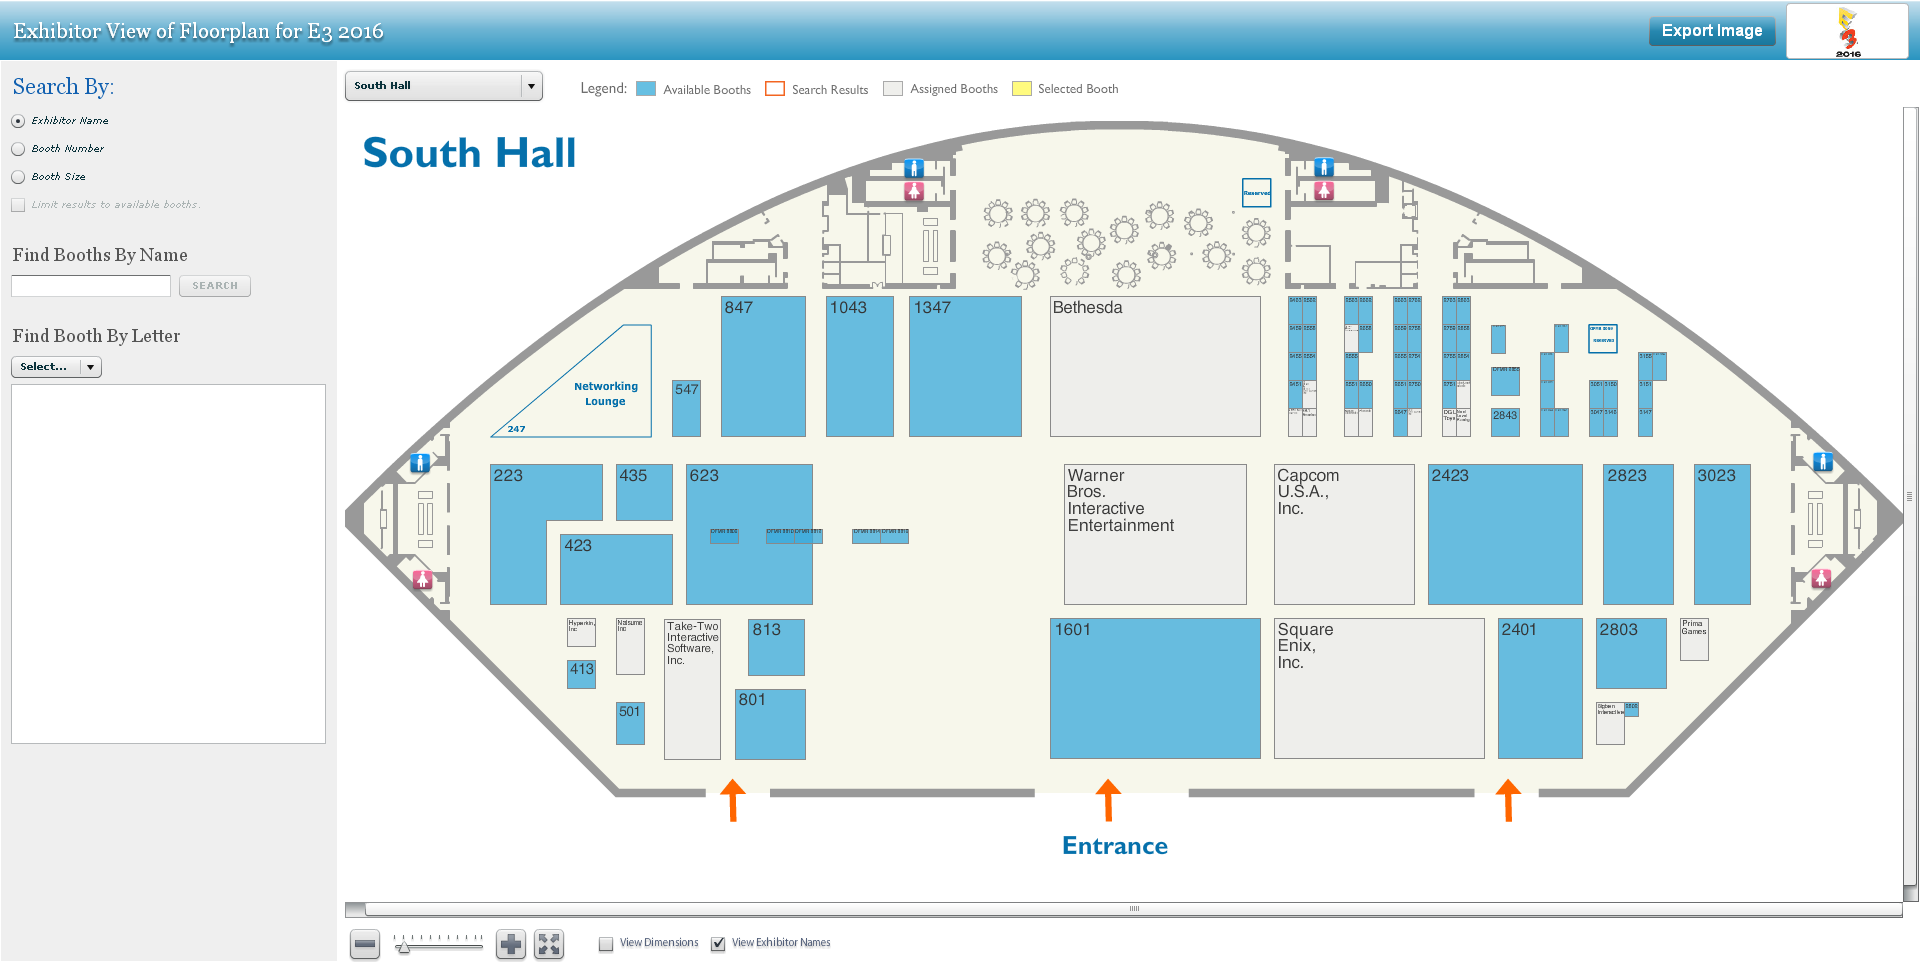 E3 2016 Floor Plan Released Square Enix Will Have The Same Booth As Last Year S E3 Kingdom Hearts News Kh13 For Kingdom Hearts